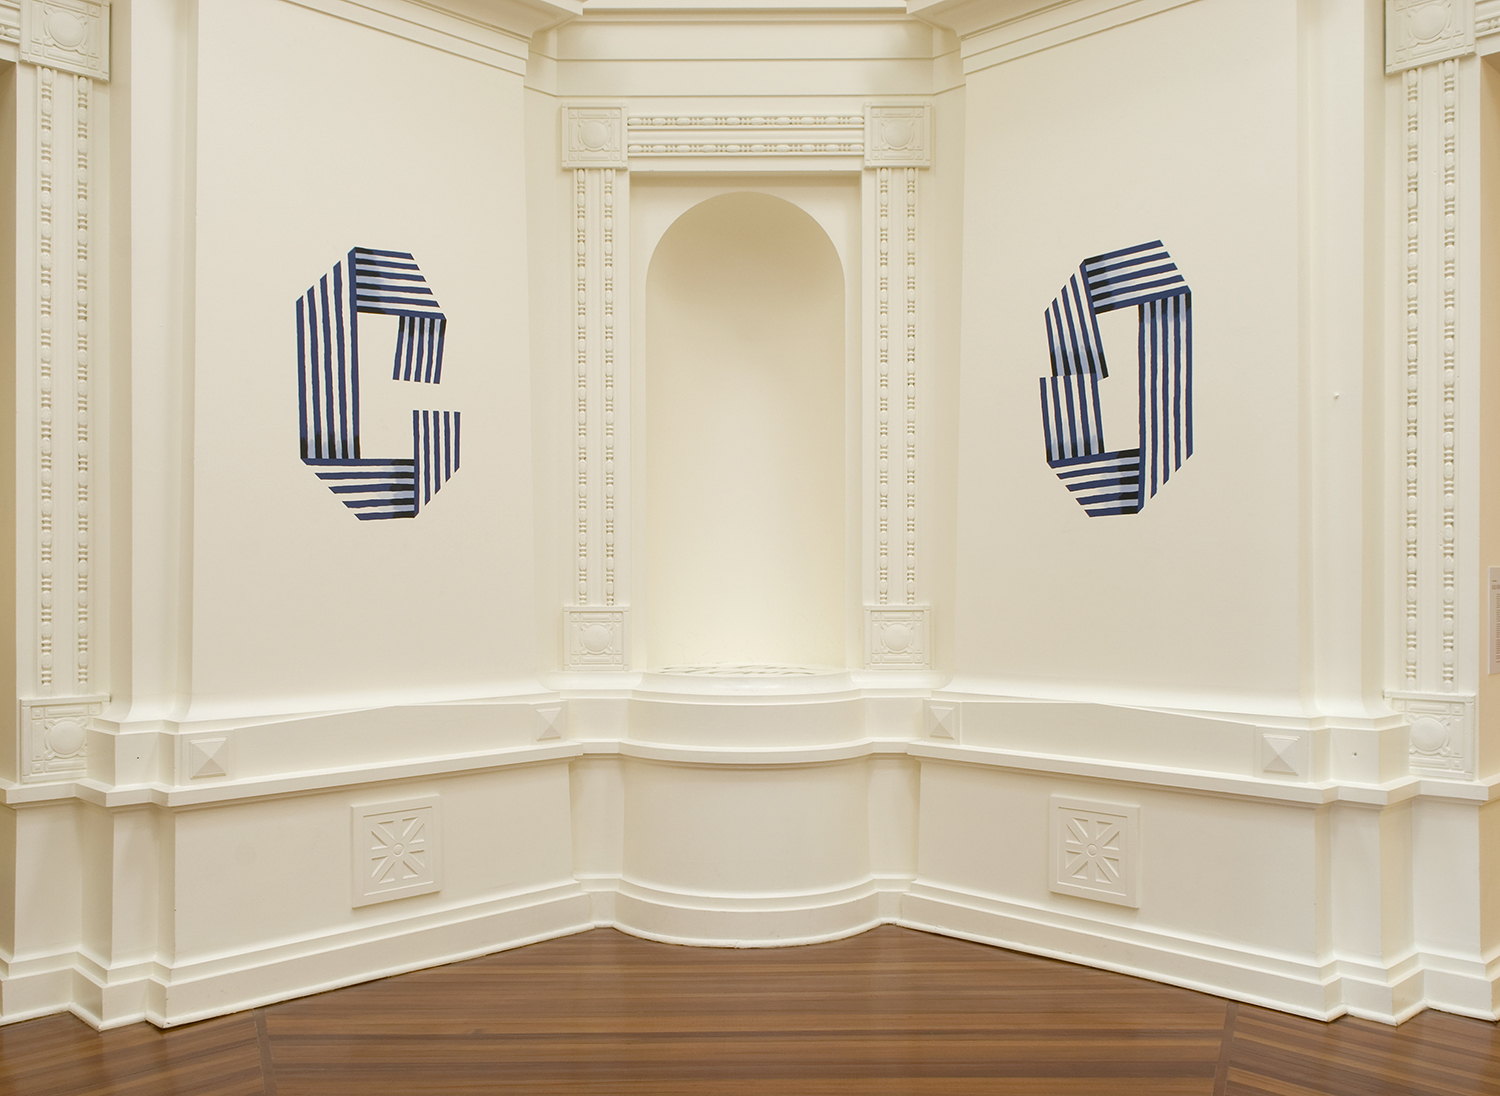 In 2012, I returned to the river town I grew up in after a 28 year absence. With some ambivalence I painted the word 'COMEBACK' around the central dome of the Sarjeant Gallery Whanganui, one letter for each side of the octagonal room, and scrawled this into the empty alcove:  DOWN RIVER RIVER FLAT FLAT CALM CALM DOWN